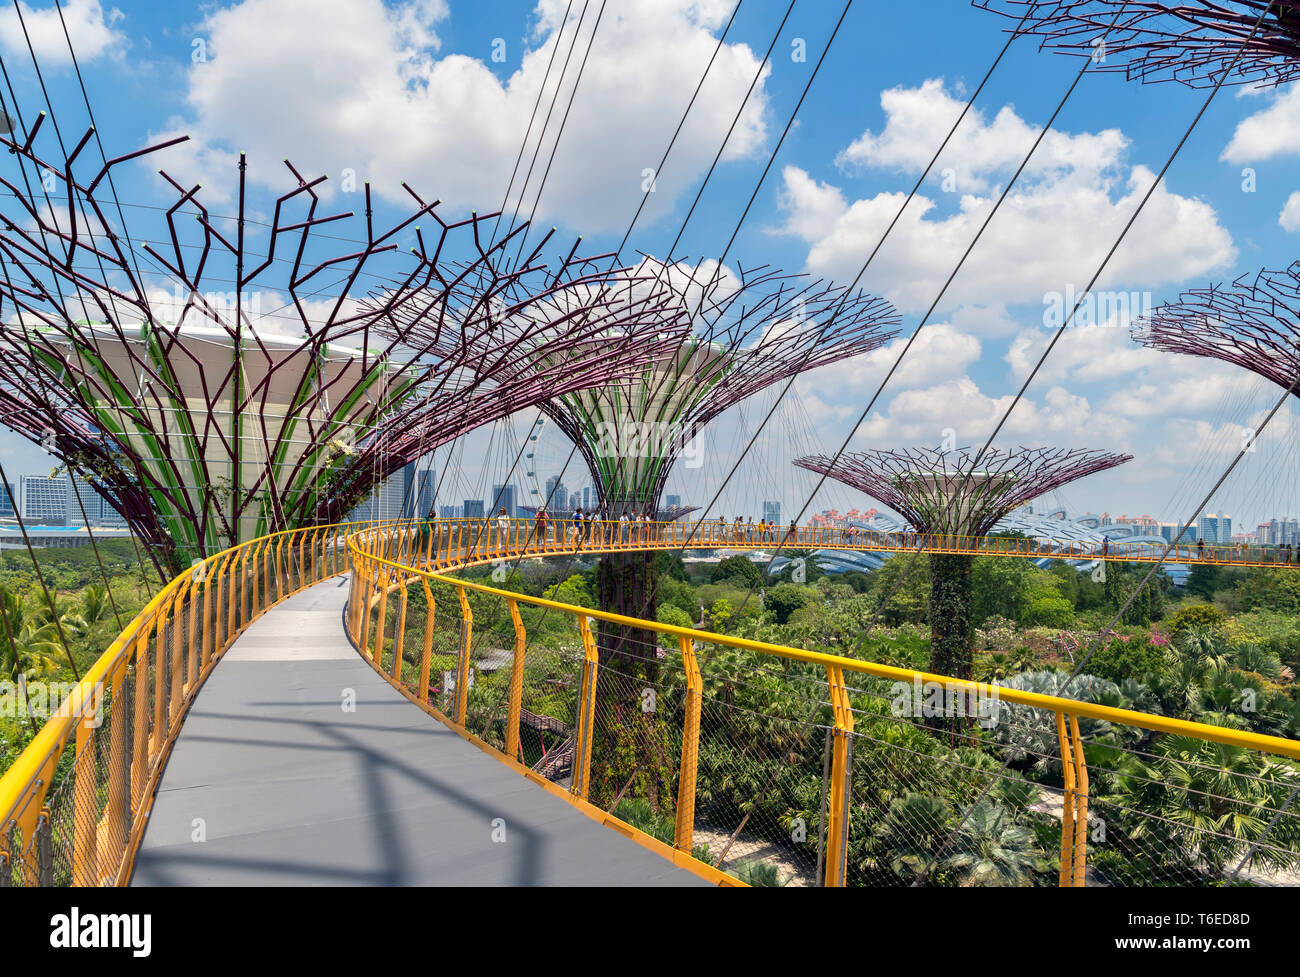 The OCBC Skyway, an aerial walkway in the Supertree Grove, Gardens by the Bay, Singapore City, Singapore Stock Photo